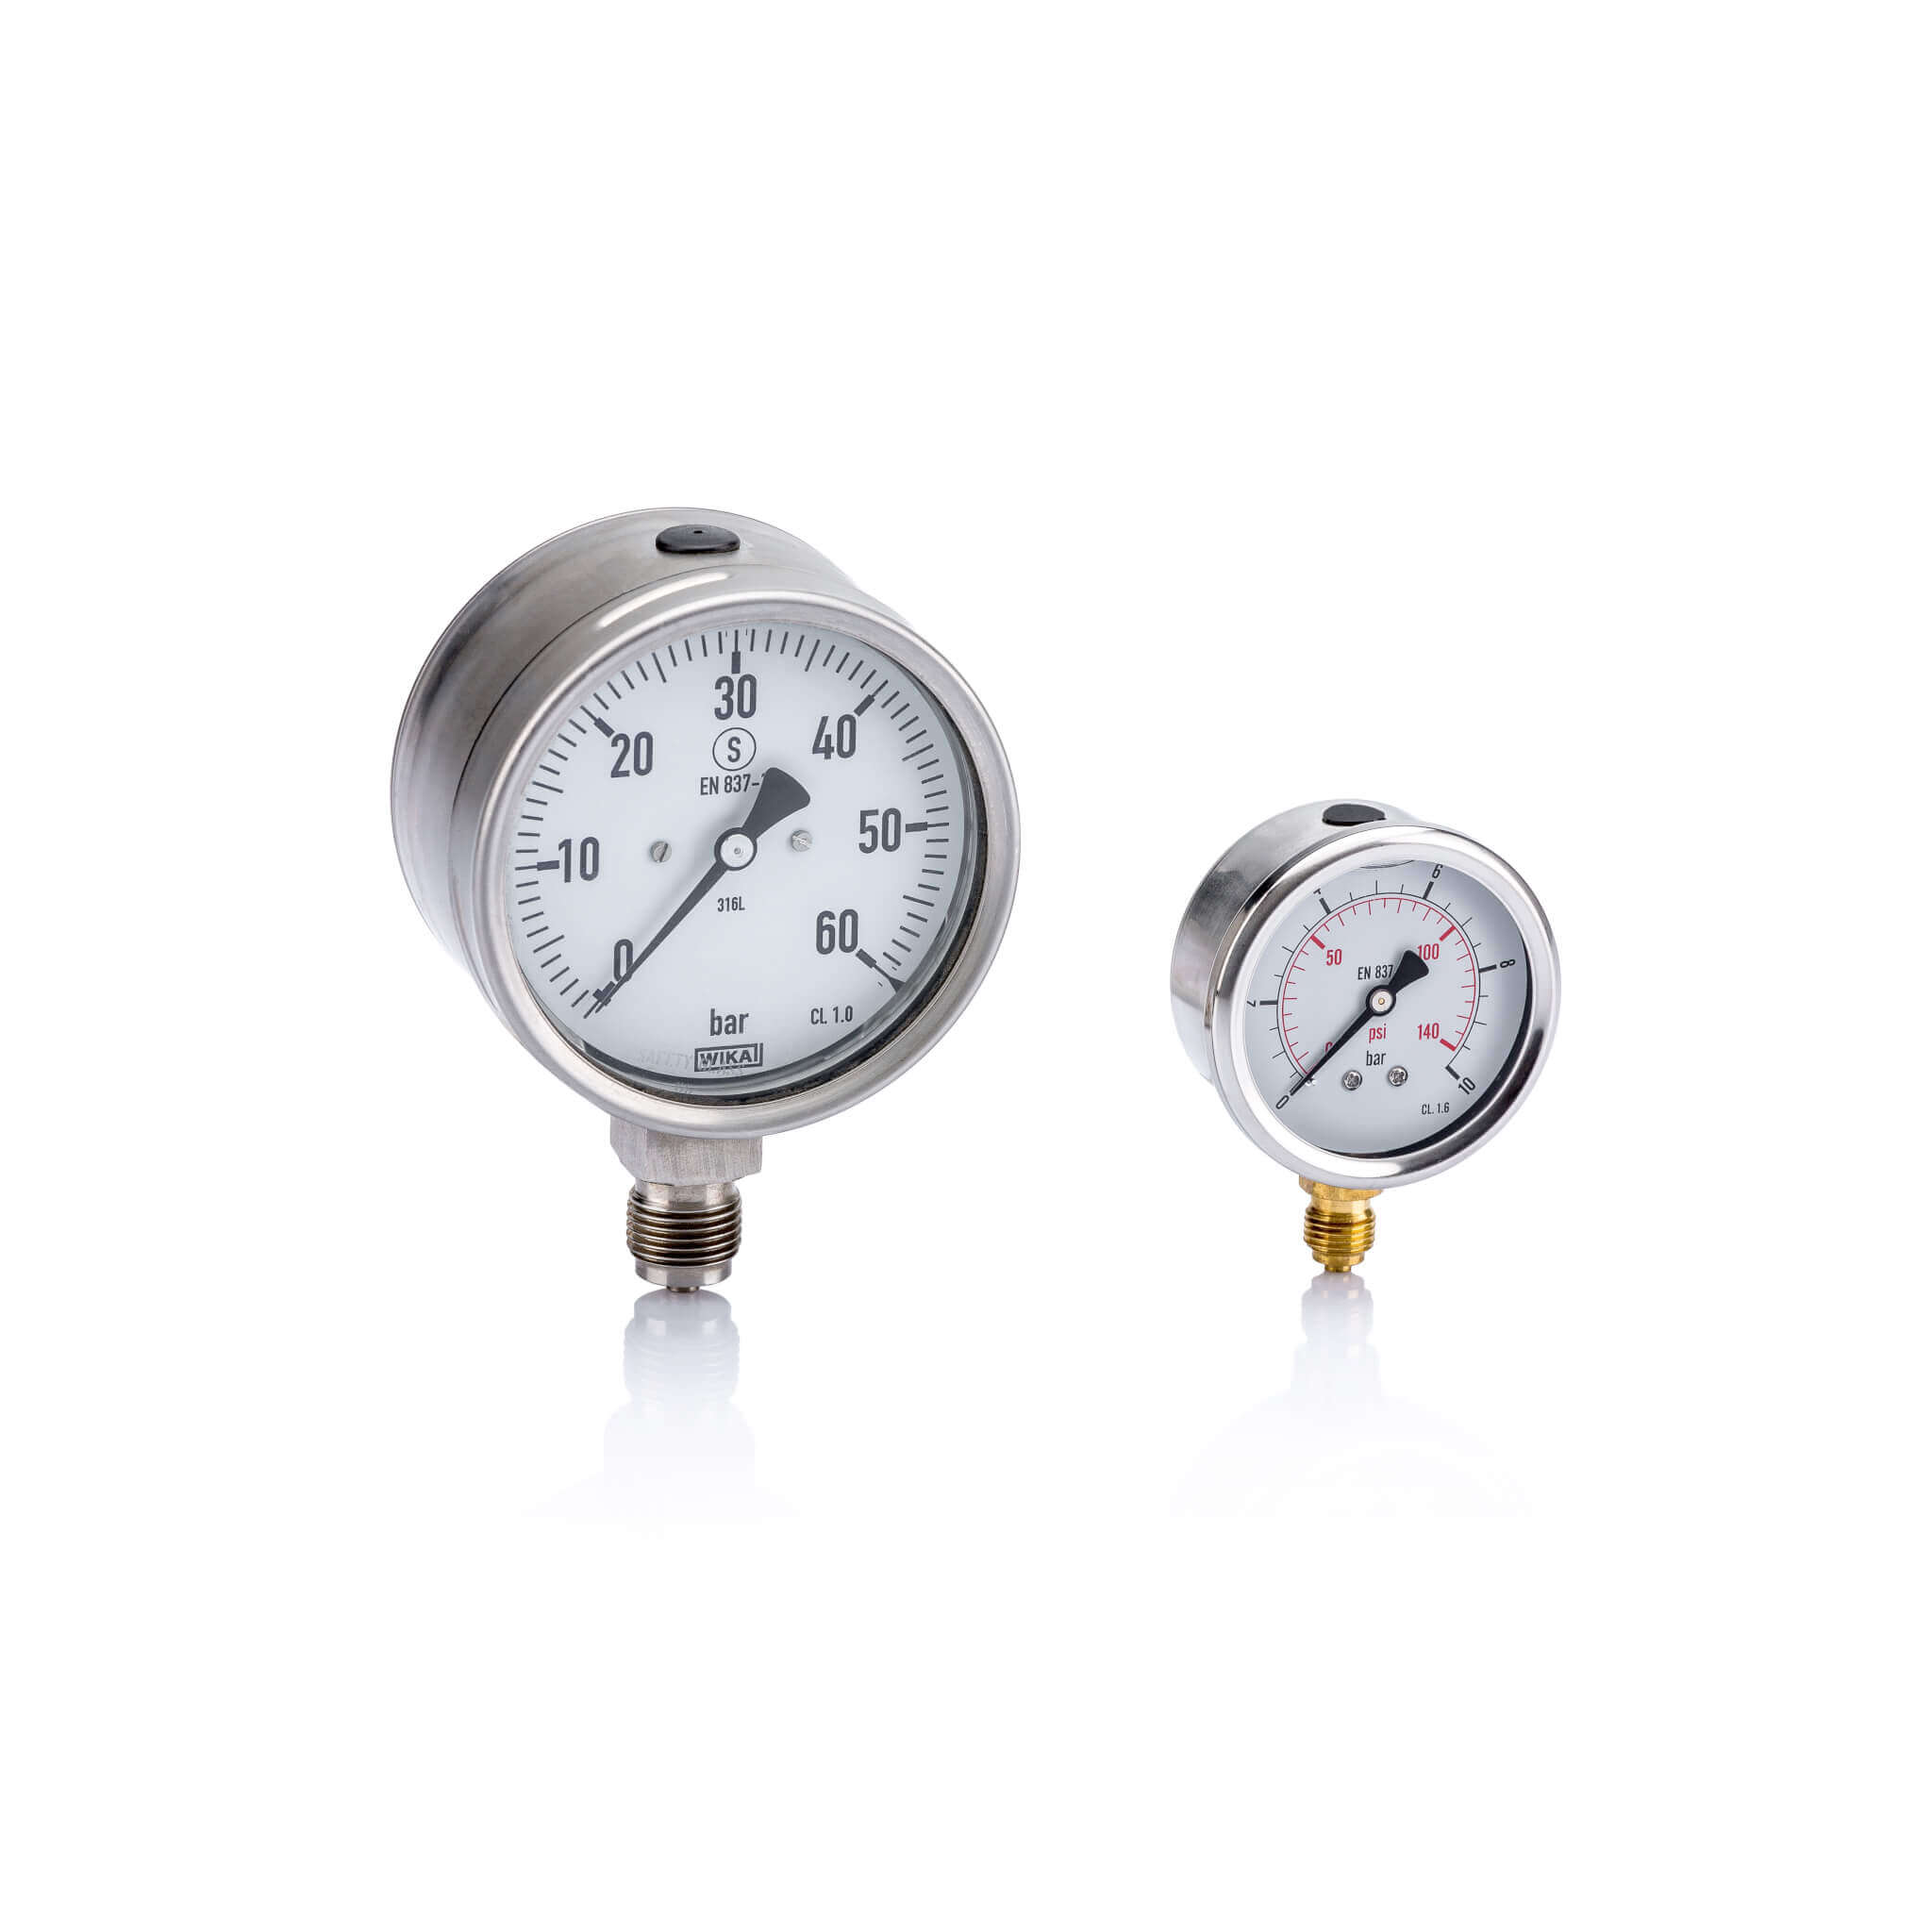 Hydraulic manometers, hydraulic pressure gauge